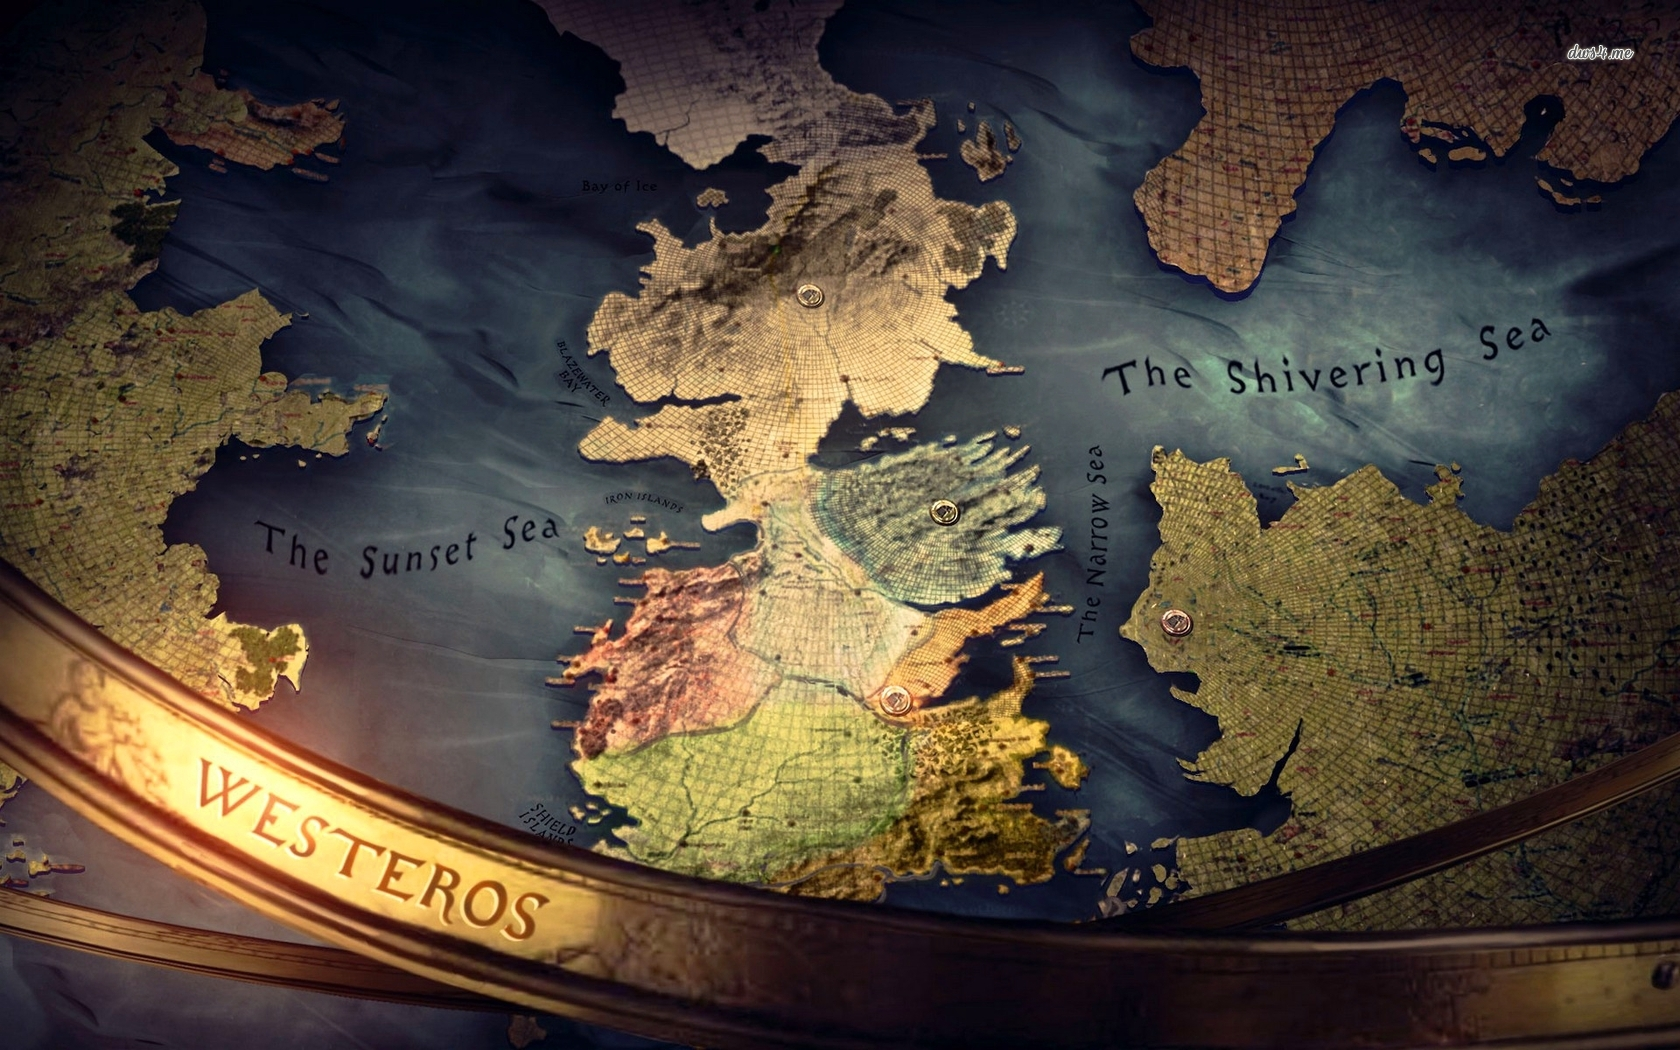 Westeros-map-Game-of-Thrones-wallpaper-wp34012359